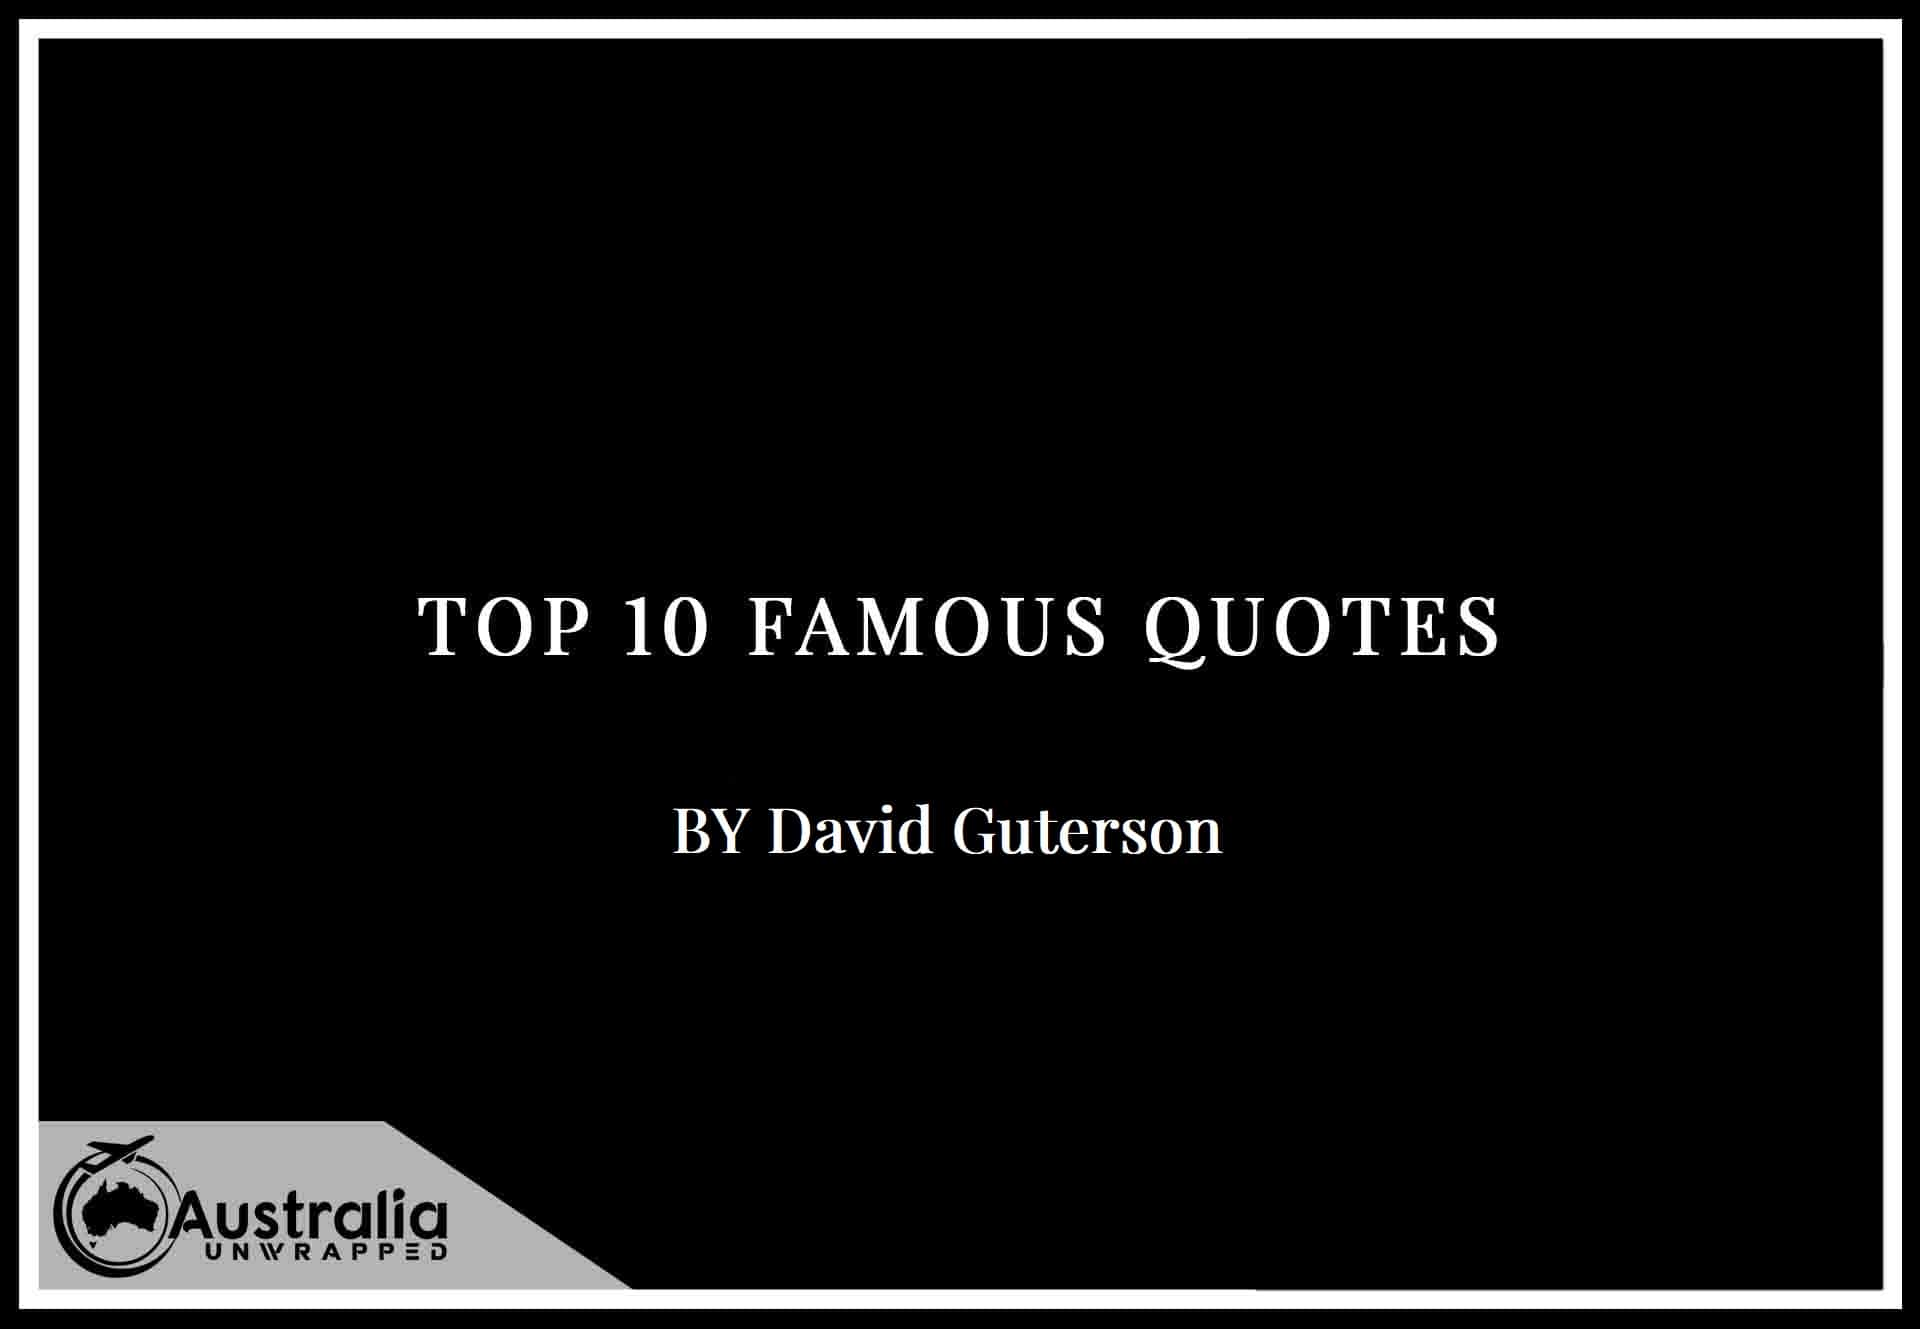 Top 10 Famous Quotes by Author David Guterson